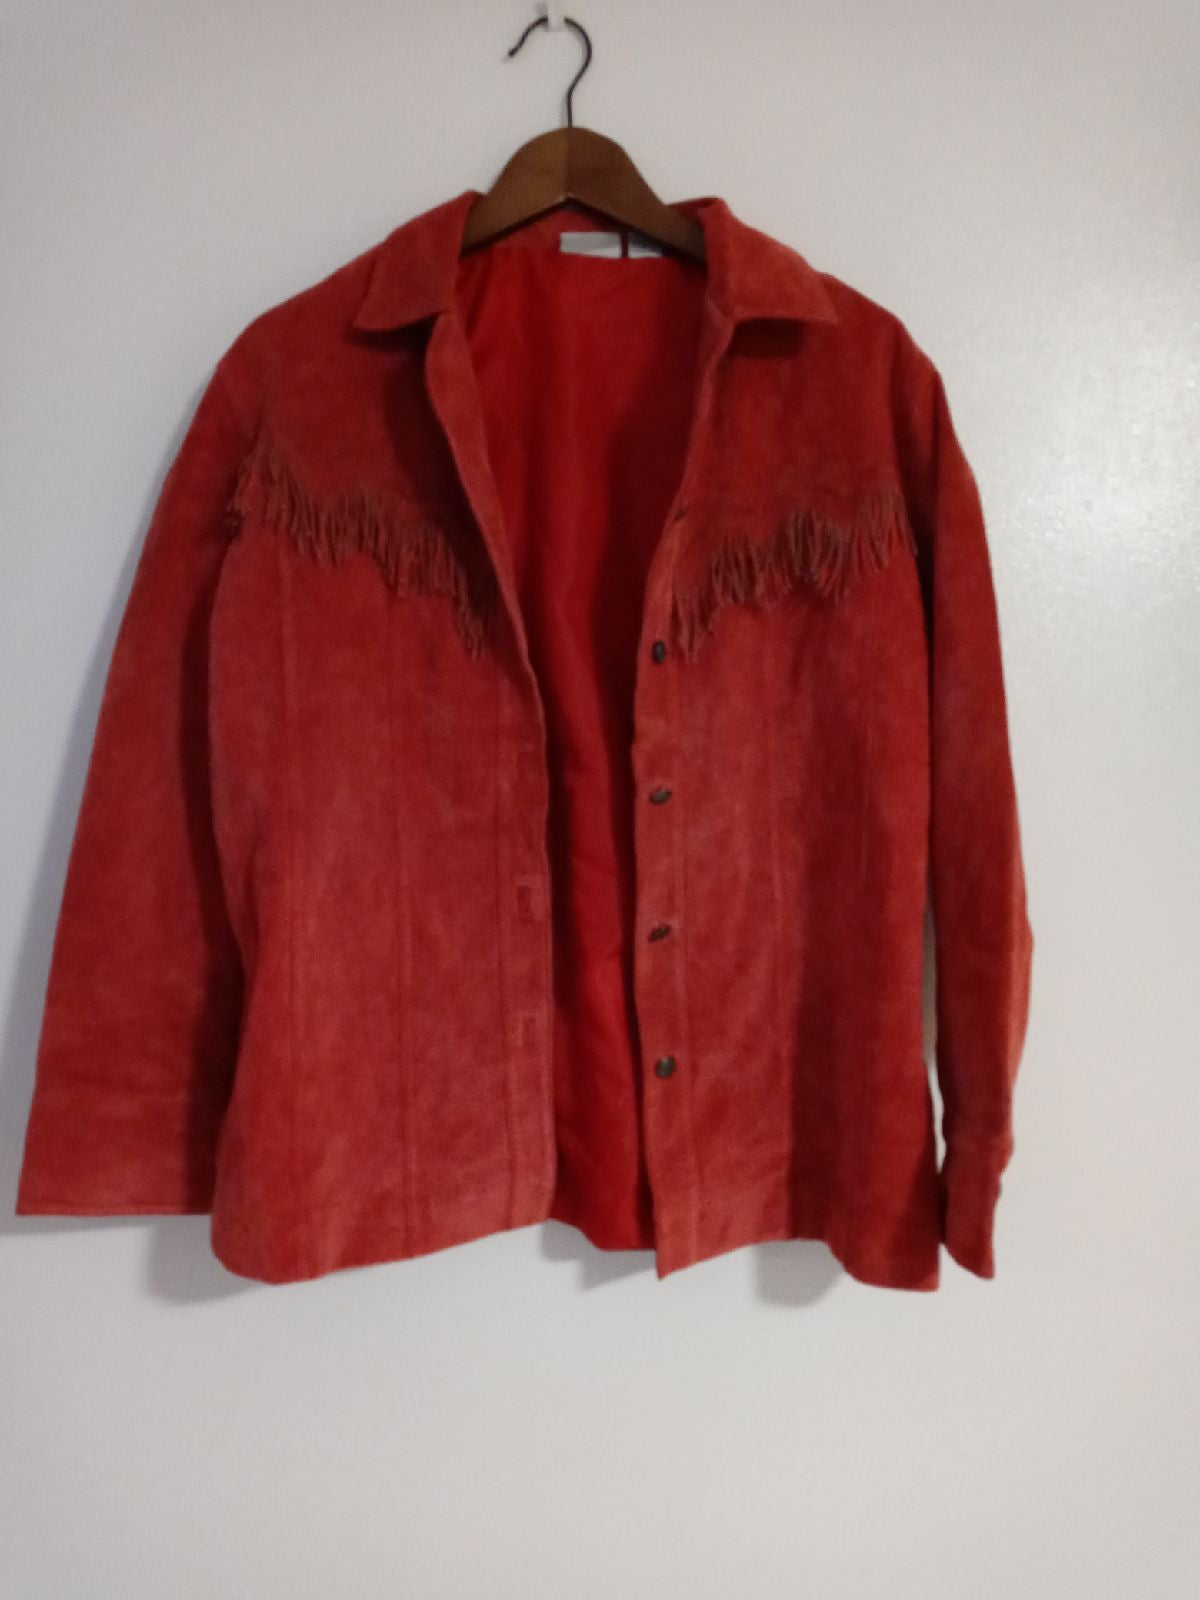 Chico's pink leather jacket size L adult